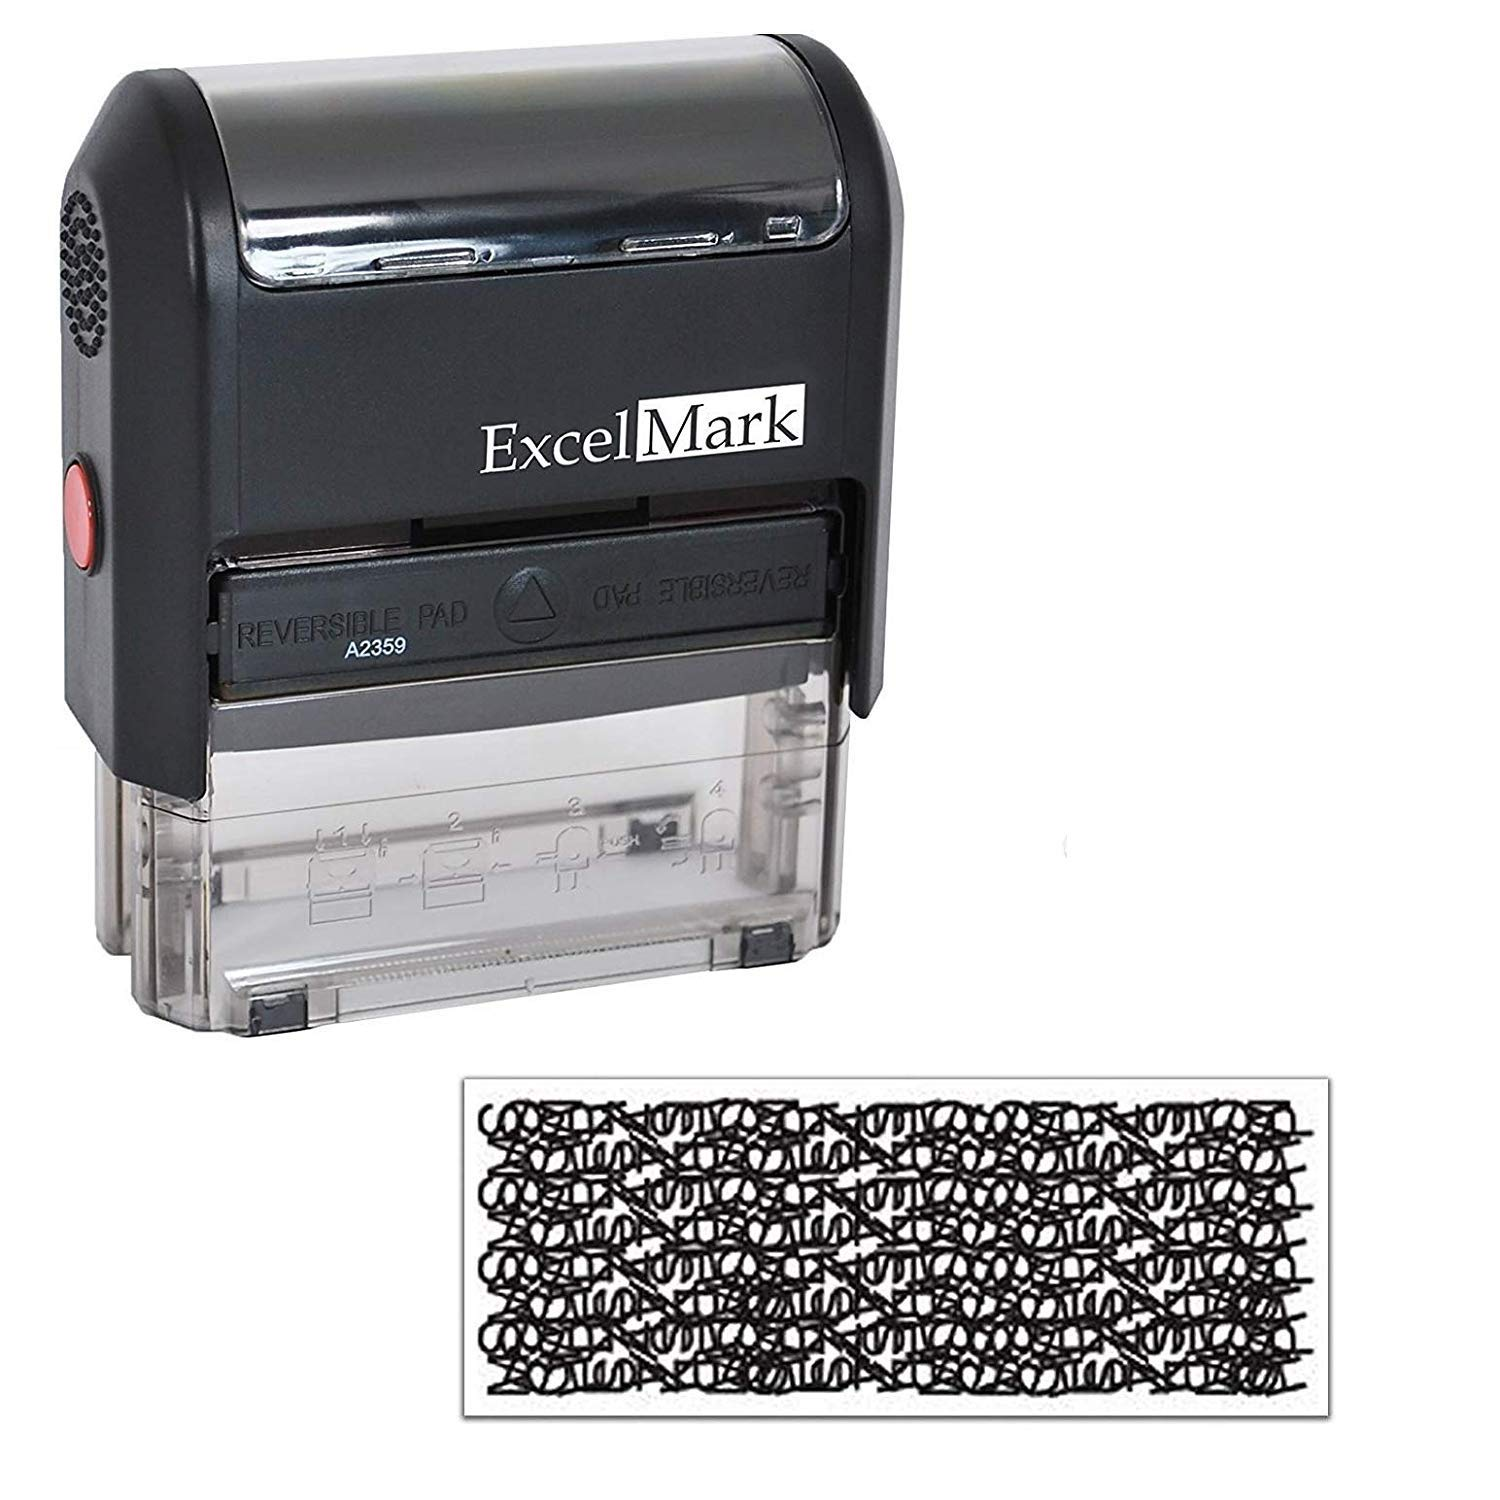 ExcelMark Identity Theft Protection Stamp - Standard Size (7/8 X 2-5/16) Discount Rubber Stamps